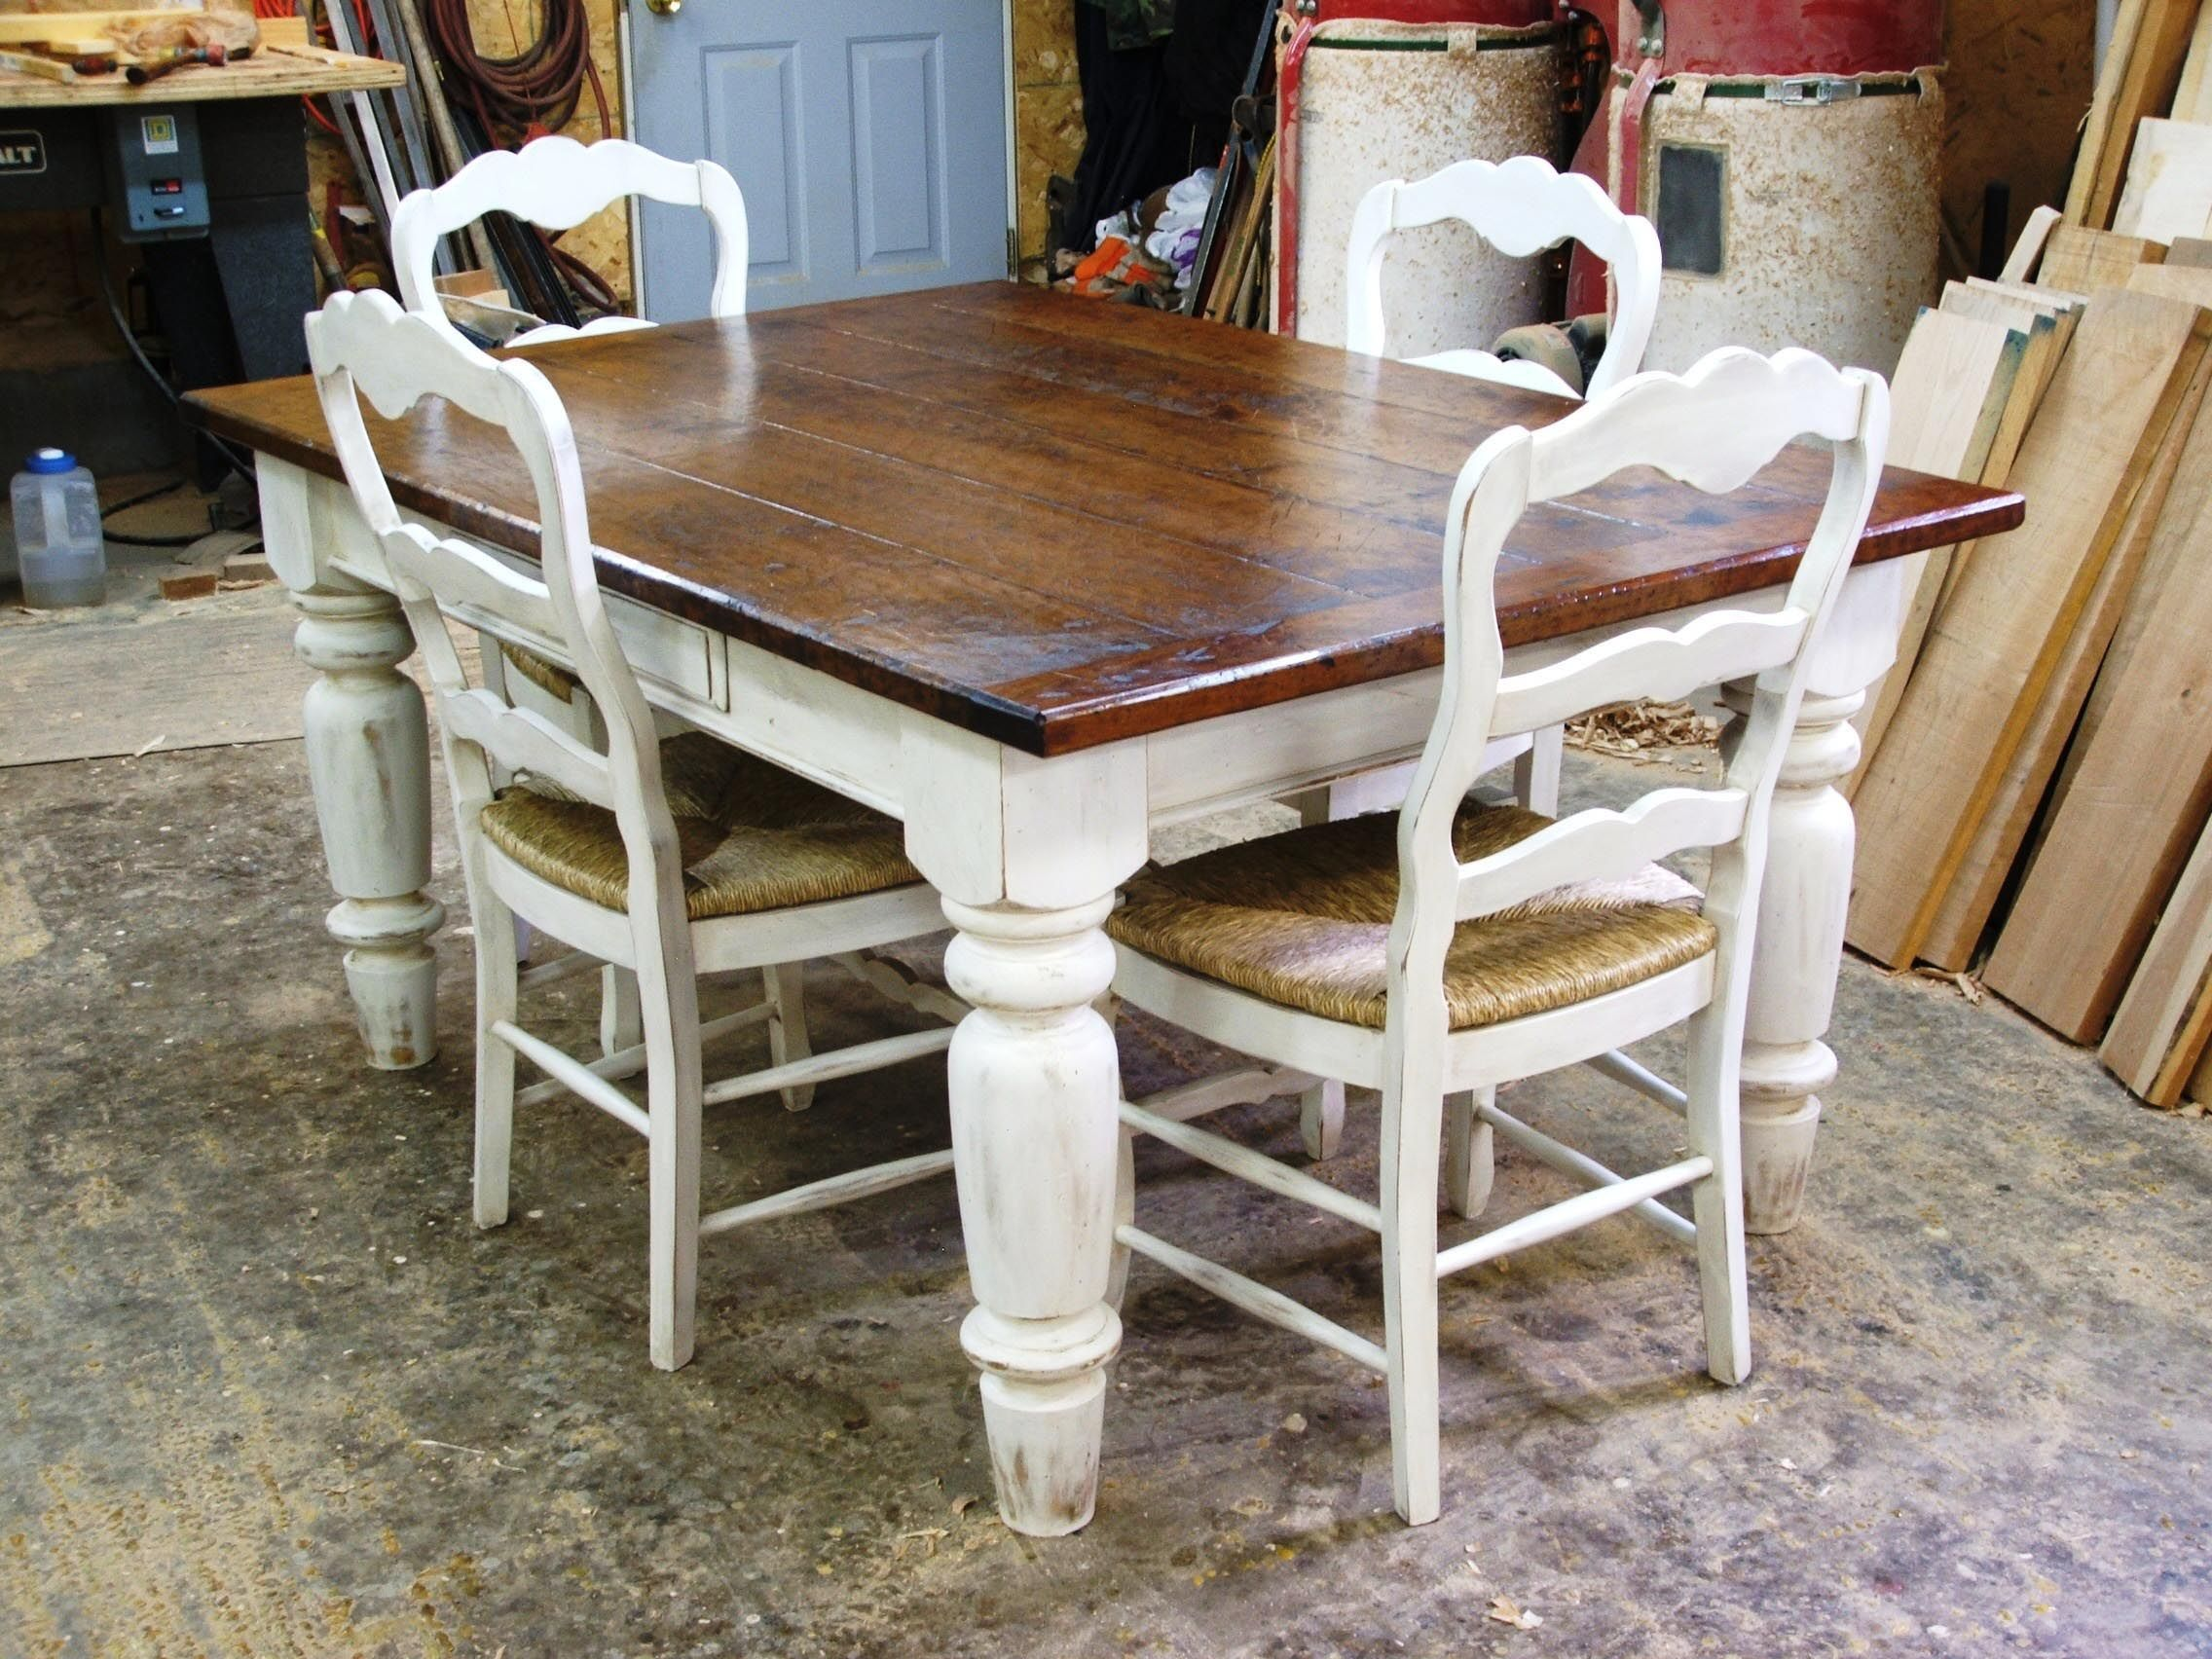 Cherry Wood W White Scrubbed Base And Matching Chairs Timber Dining Table Rustic Kitchen Tables Dining Table In Kitchen